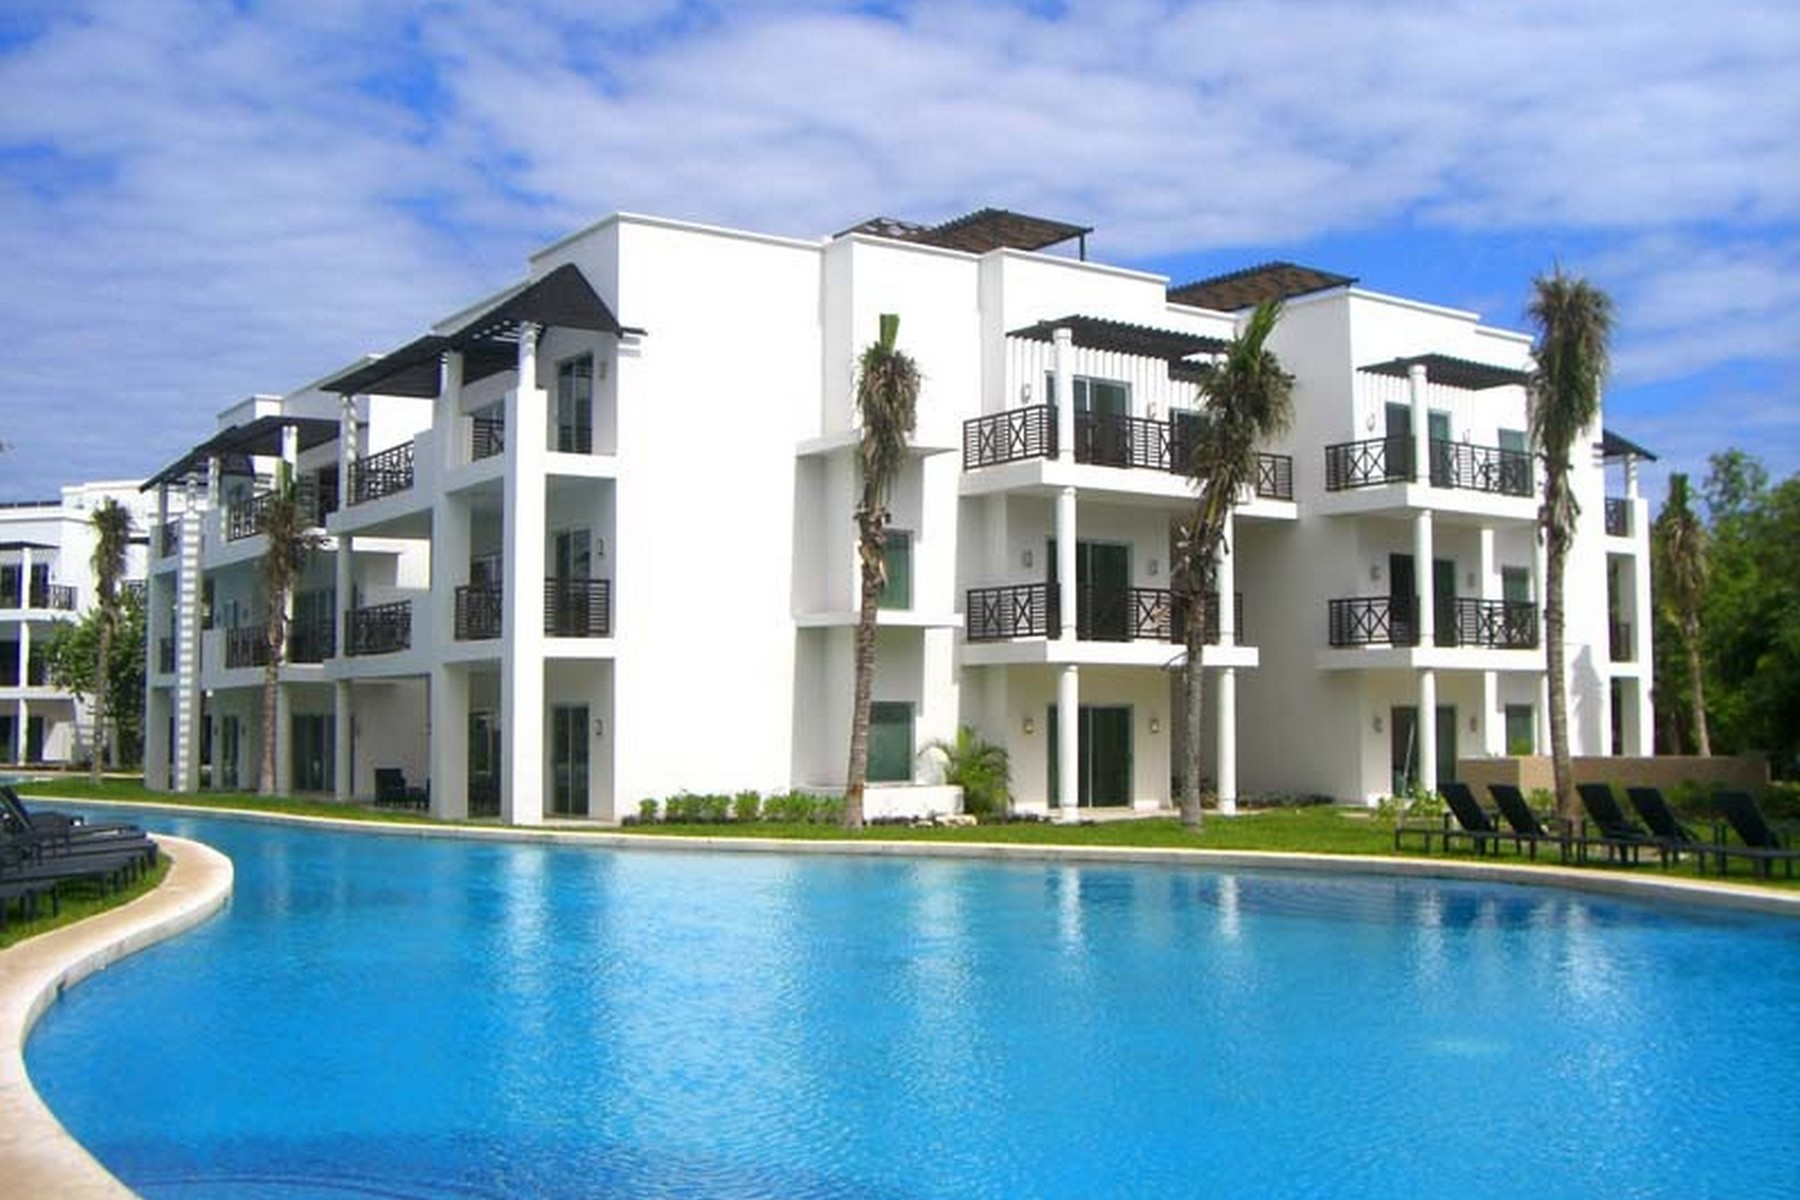 Condominium for Sale at PENTHOUSE XCALACOCO Playa Del Carmen, 77710 Mexico